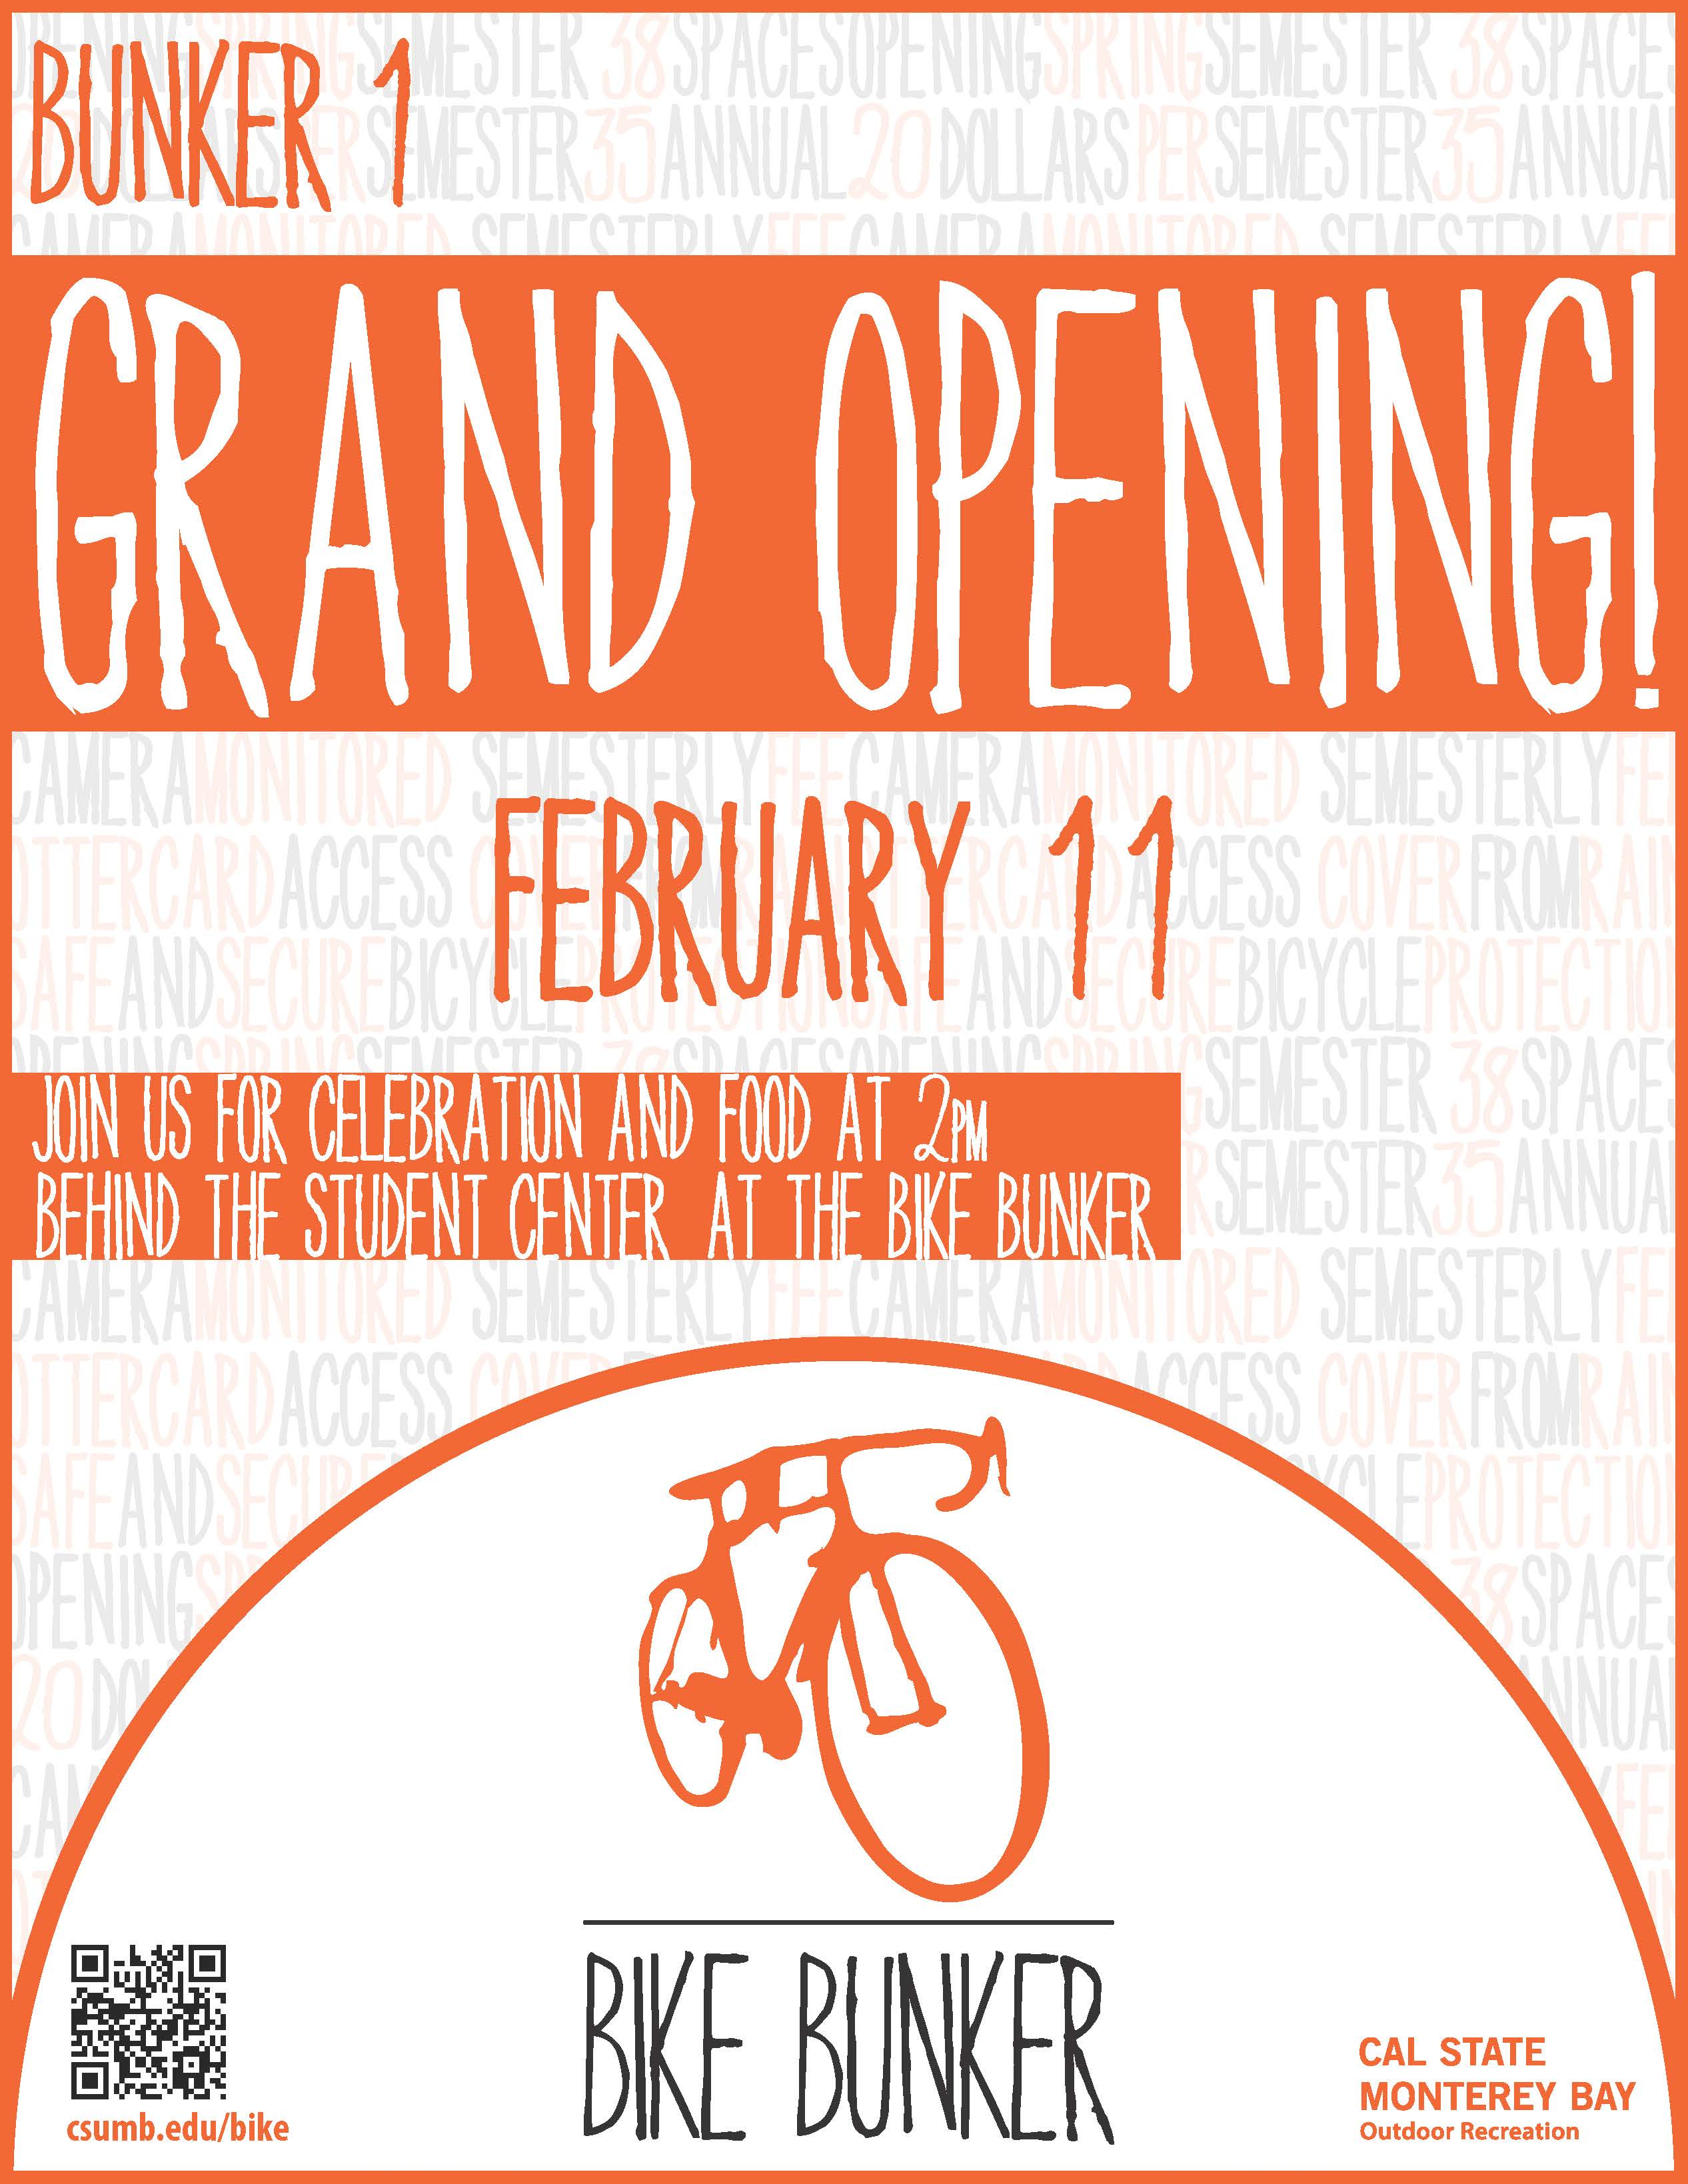 BikeBunker_Ribbon Cutting flyer2 021113